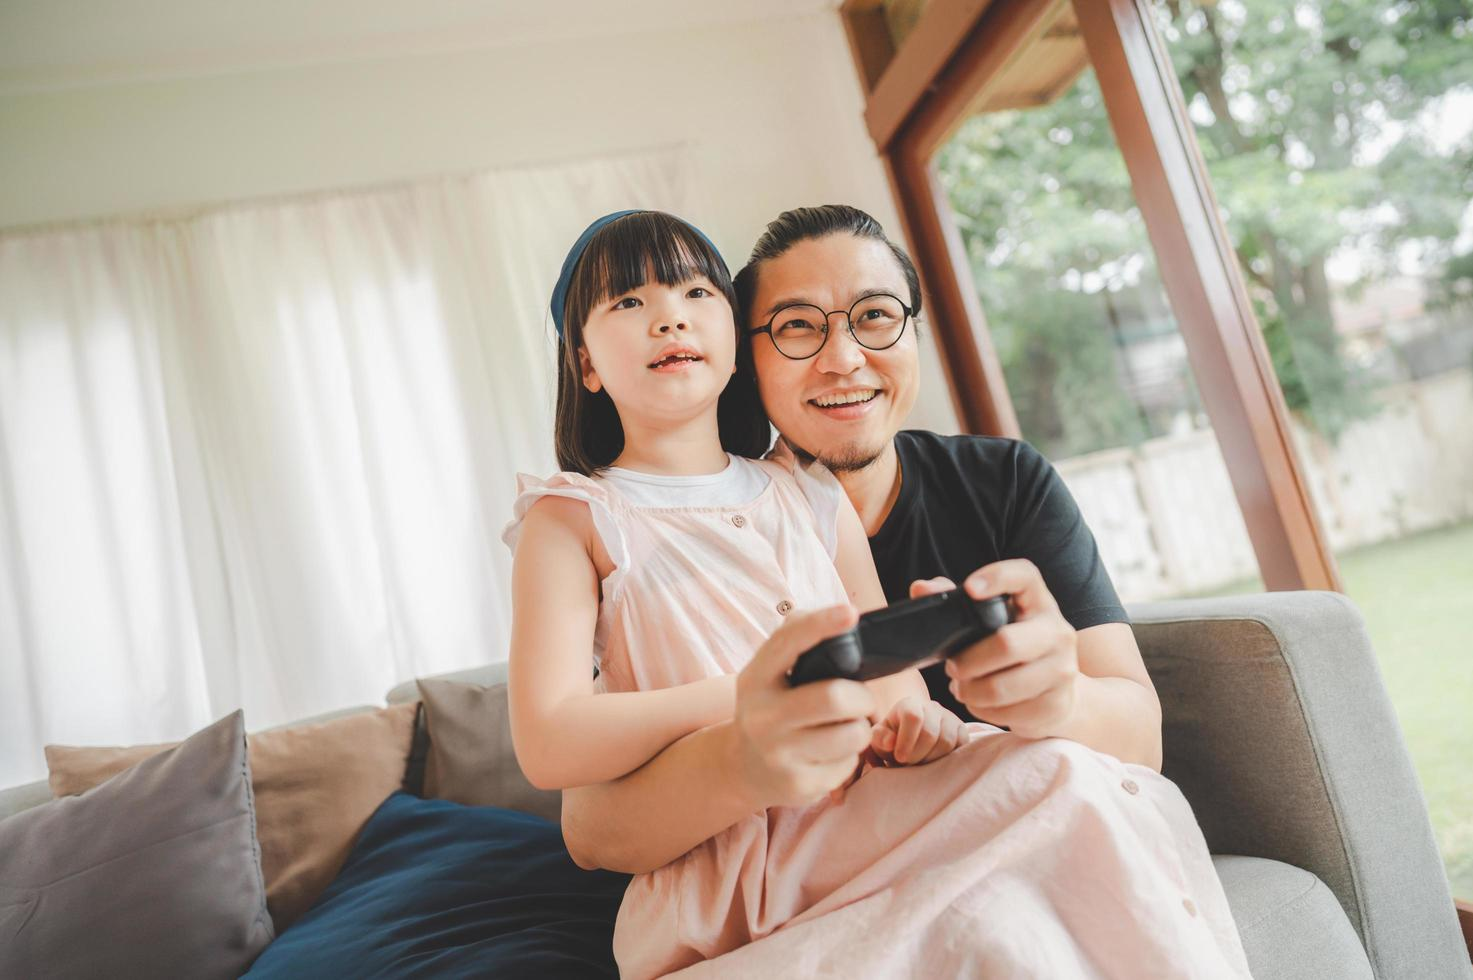 Father and daughter playing video game photo